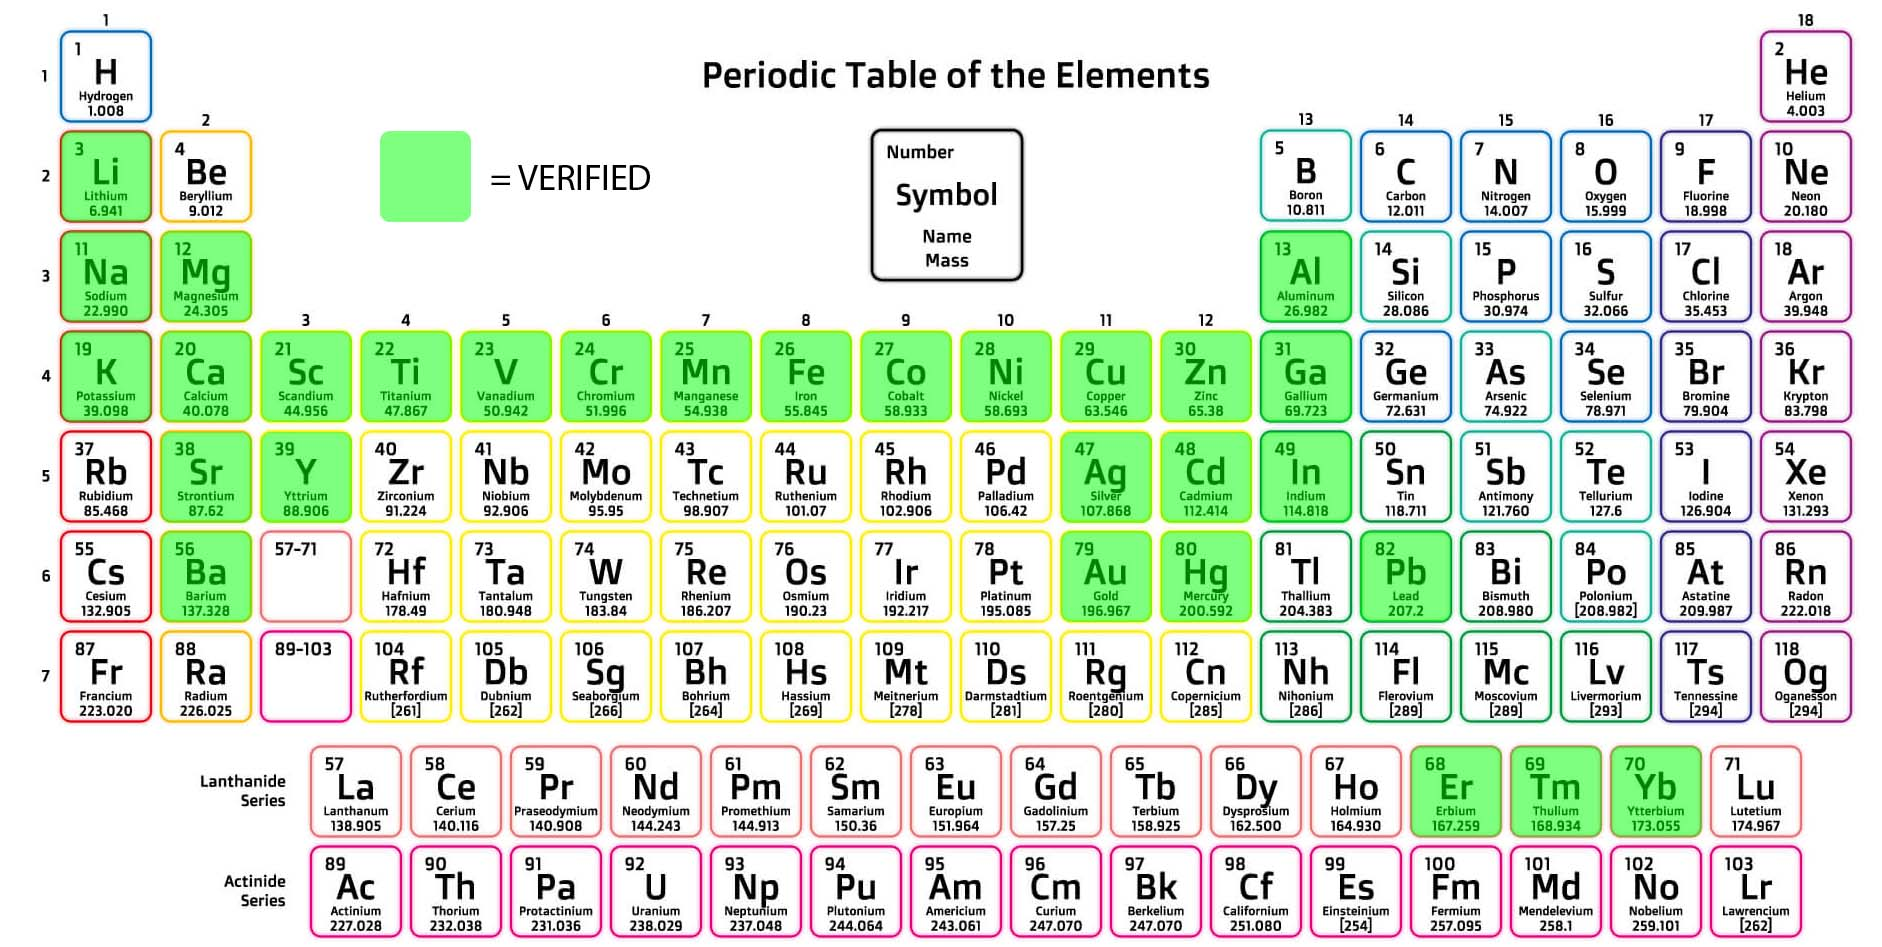 Sensmet-table-of-elements-4-2019